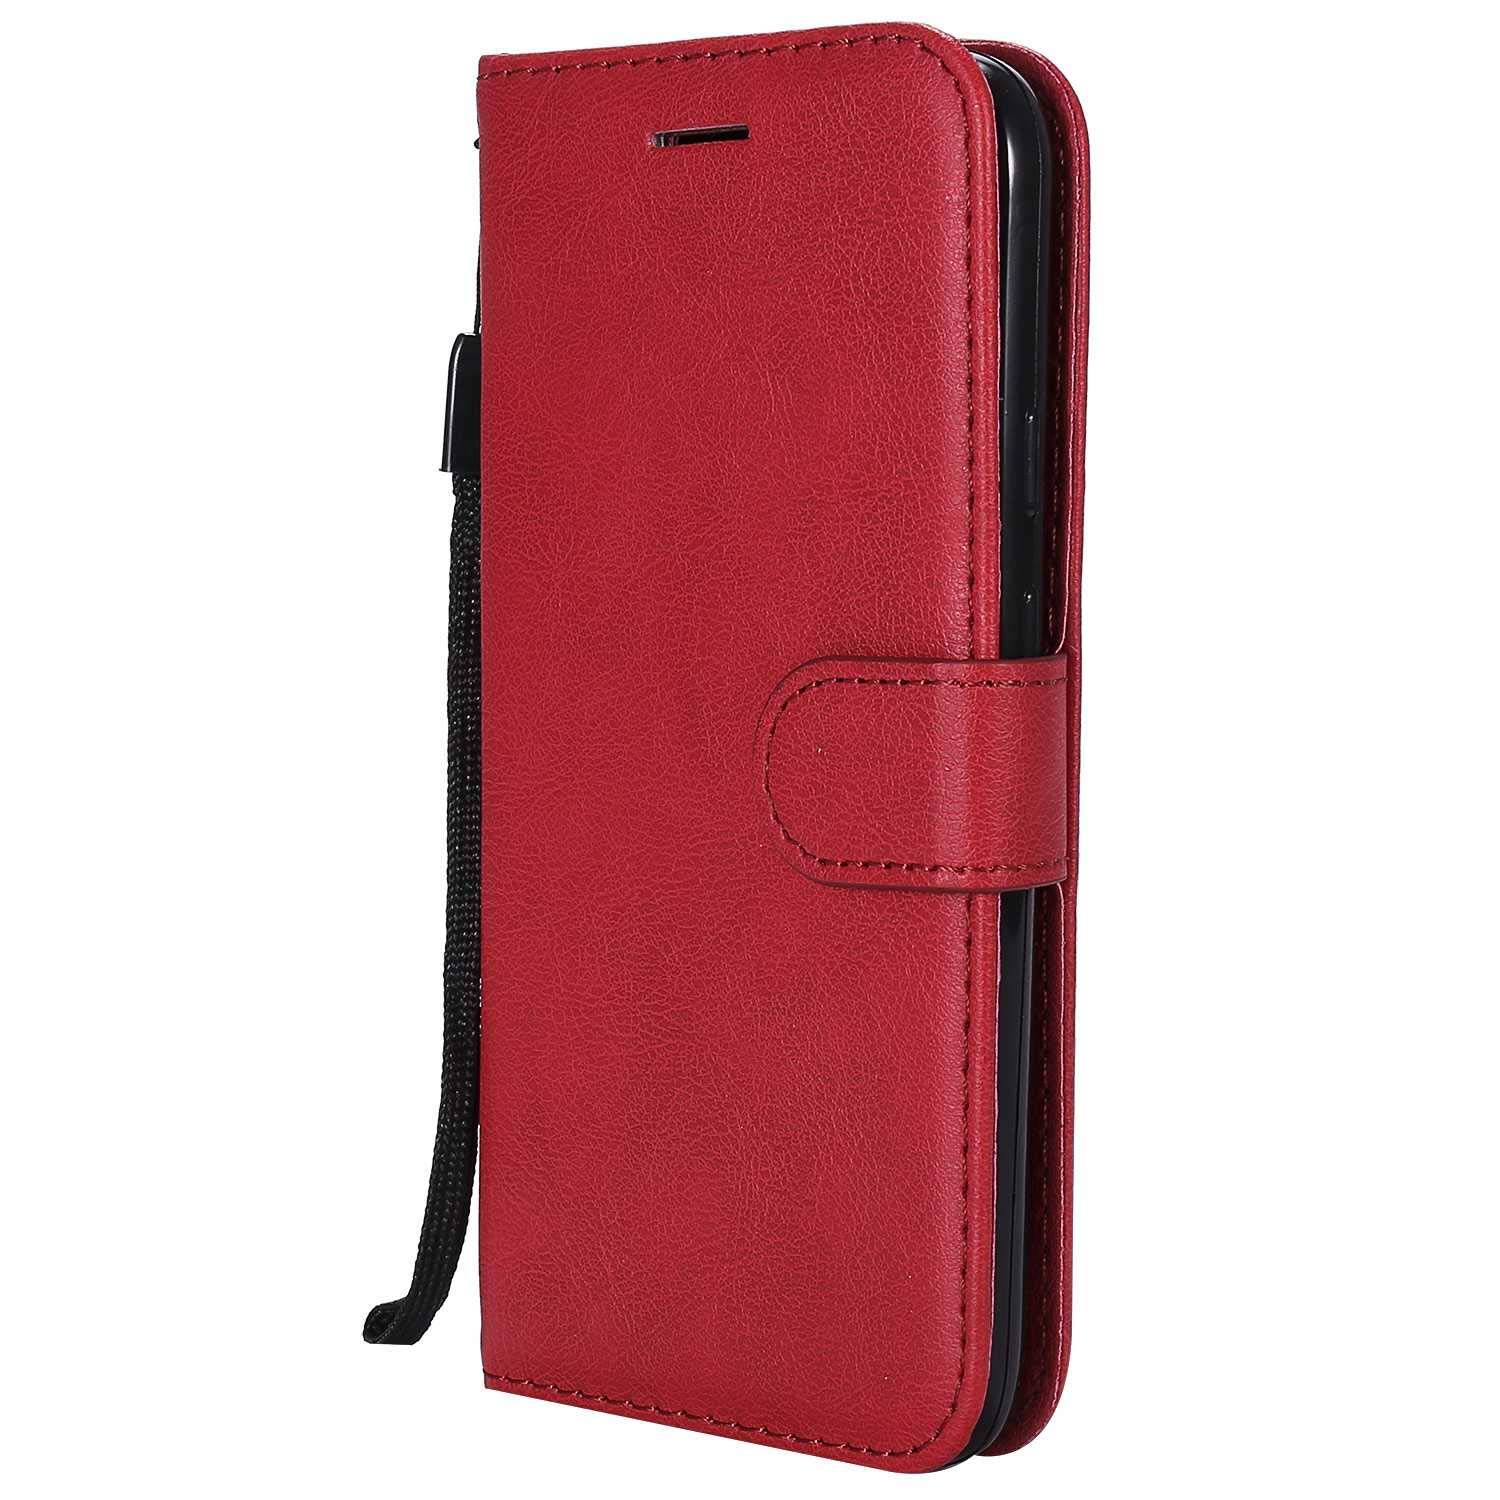 Moto G4 Play Wallet Case, UNEXTATI Leather Flip Case with Magnetic Closure and Card Holders, Anti-Shock Bumper Cover for Moto G4 Play (Red #3)